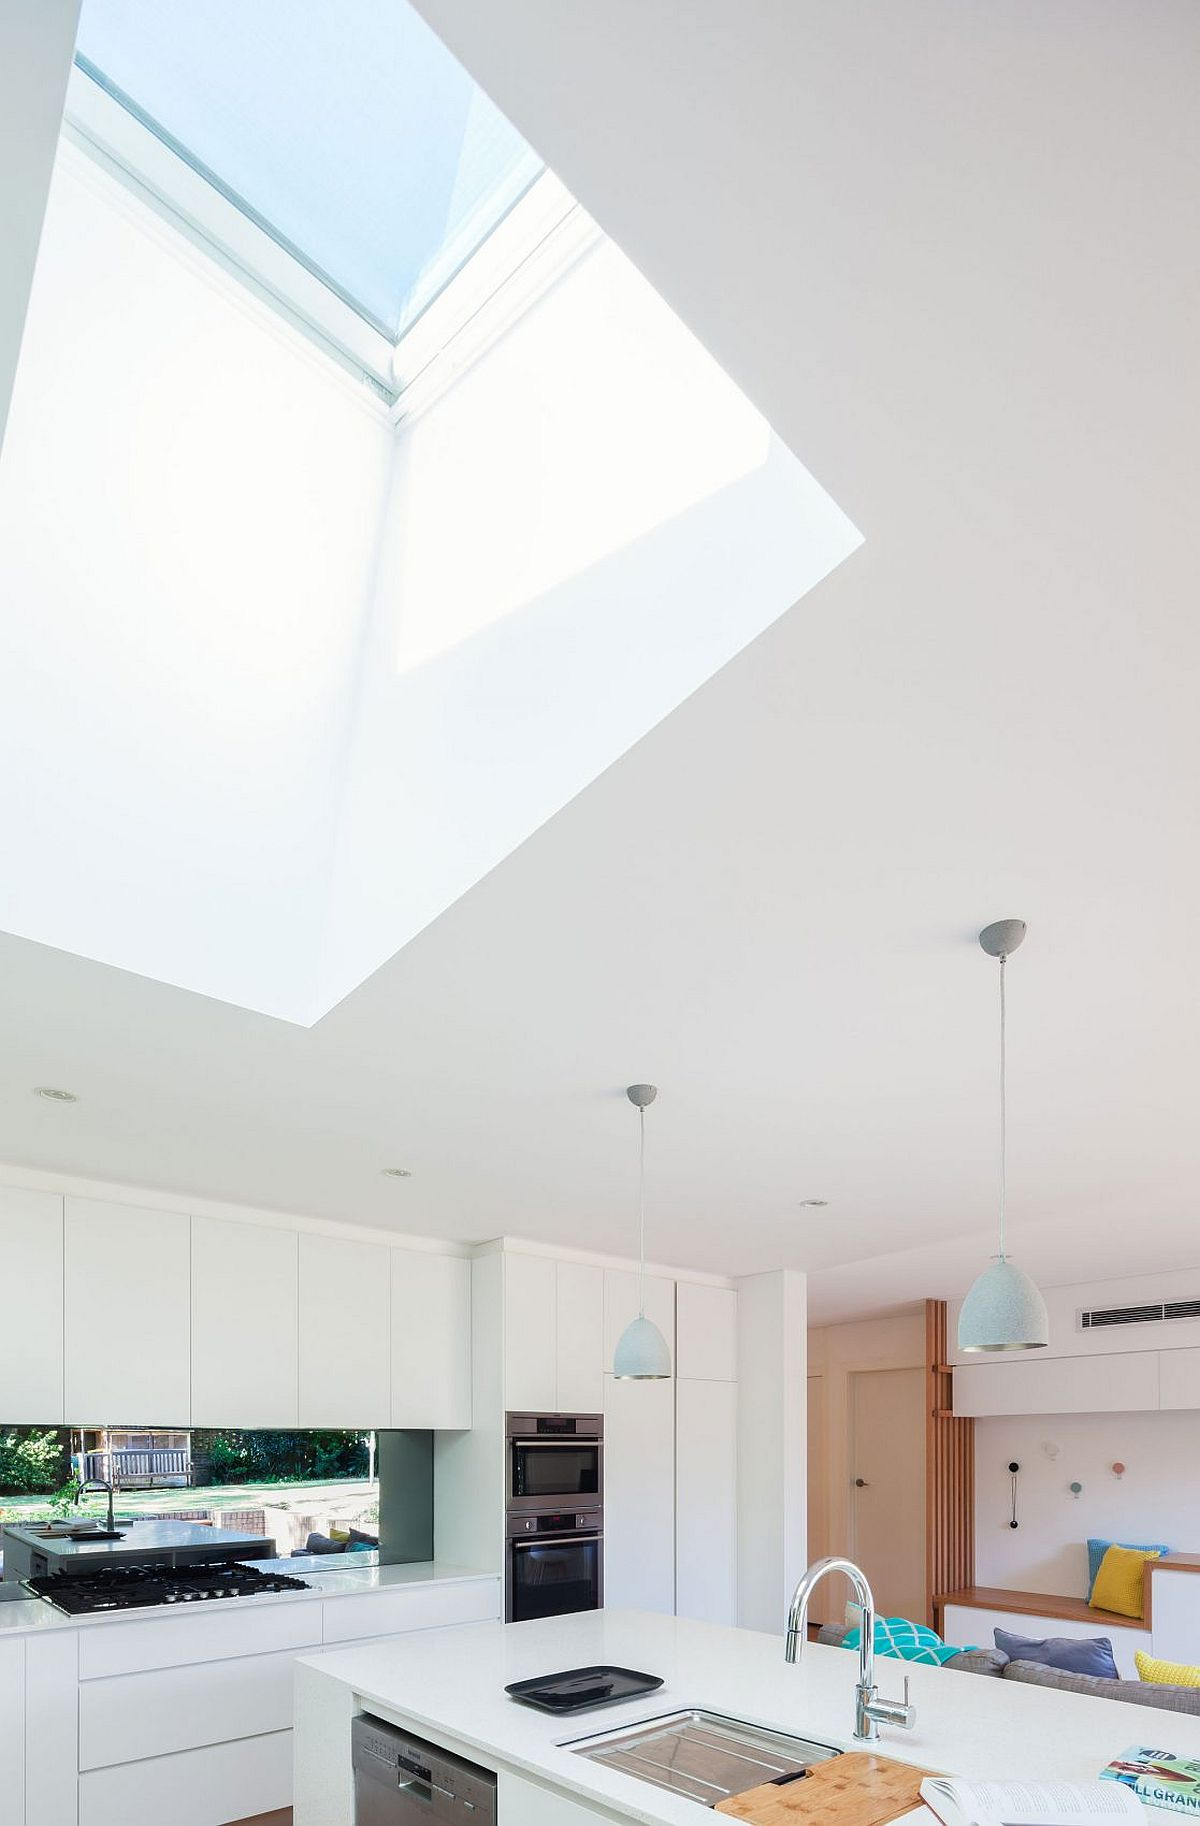 Skylight above the kitchen brings in additional natural light into the living area